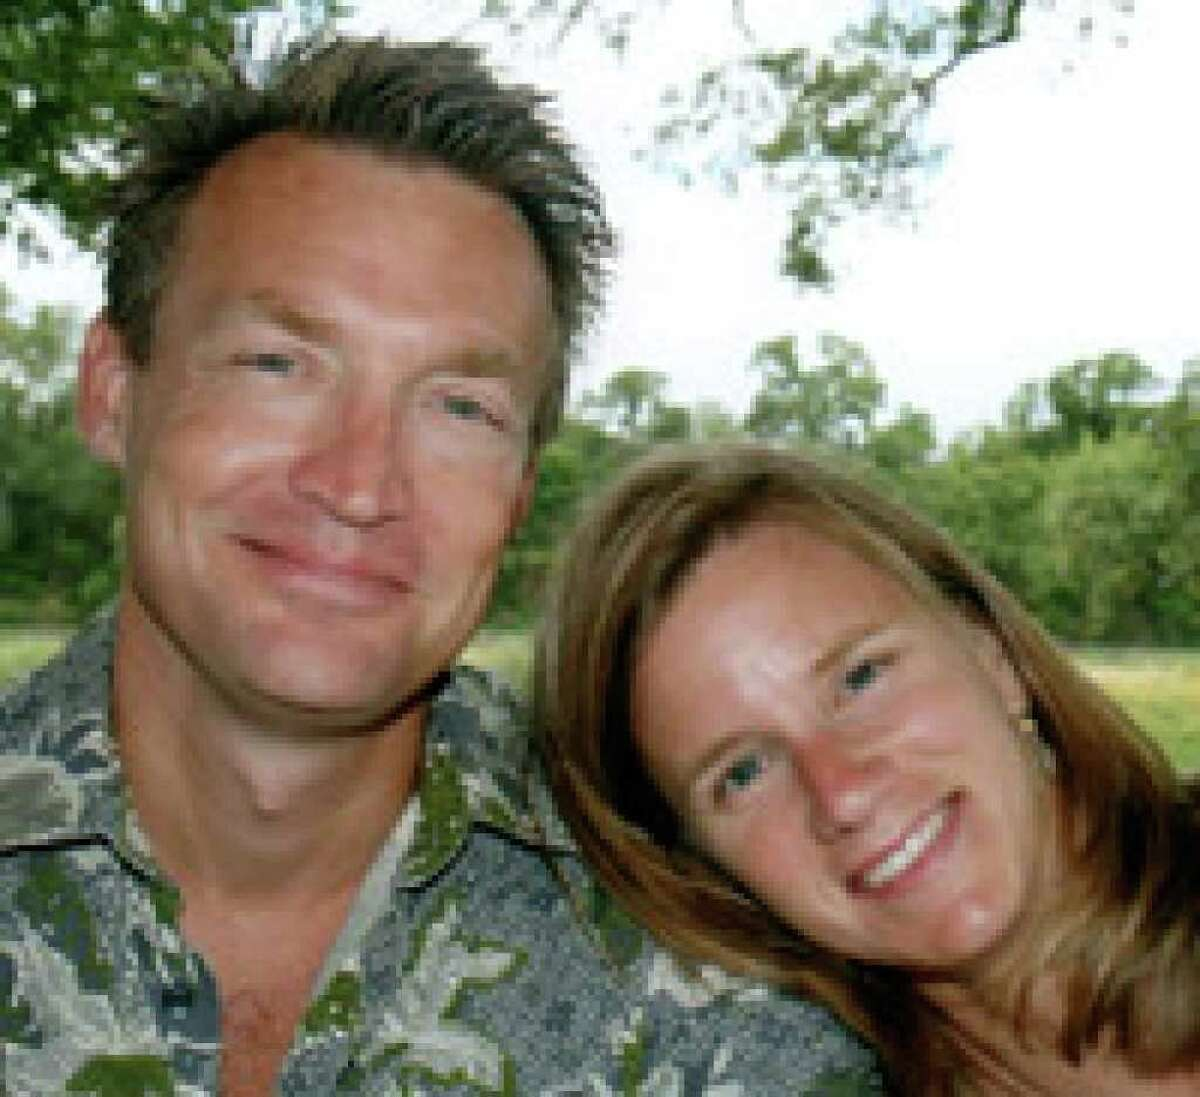 Gregory and Alexandra Bruehler, who were killed a year ago today, left behind a daughter who's now 8.